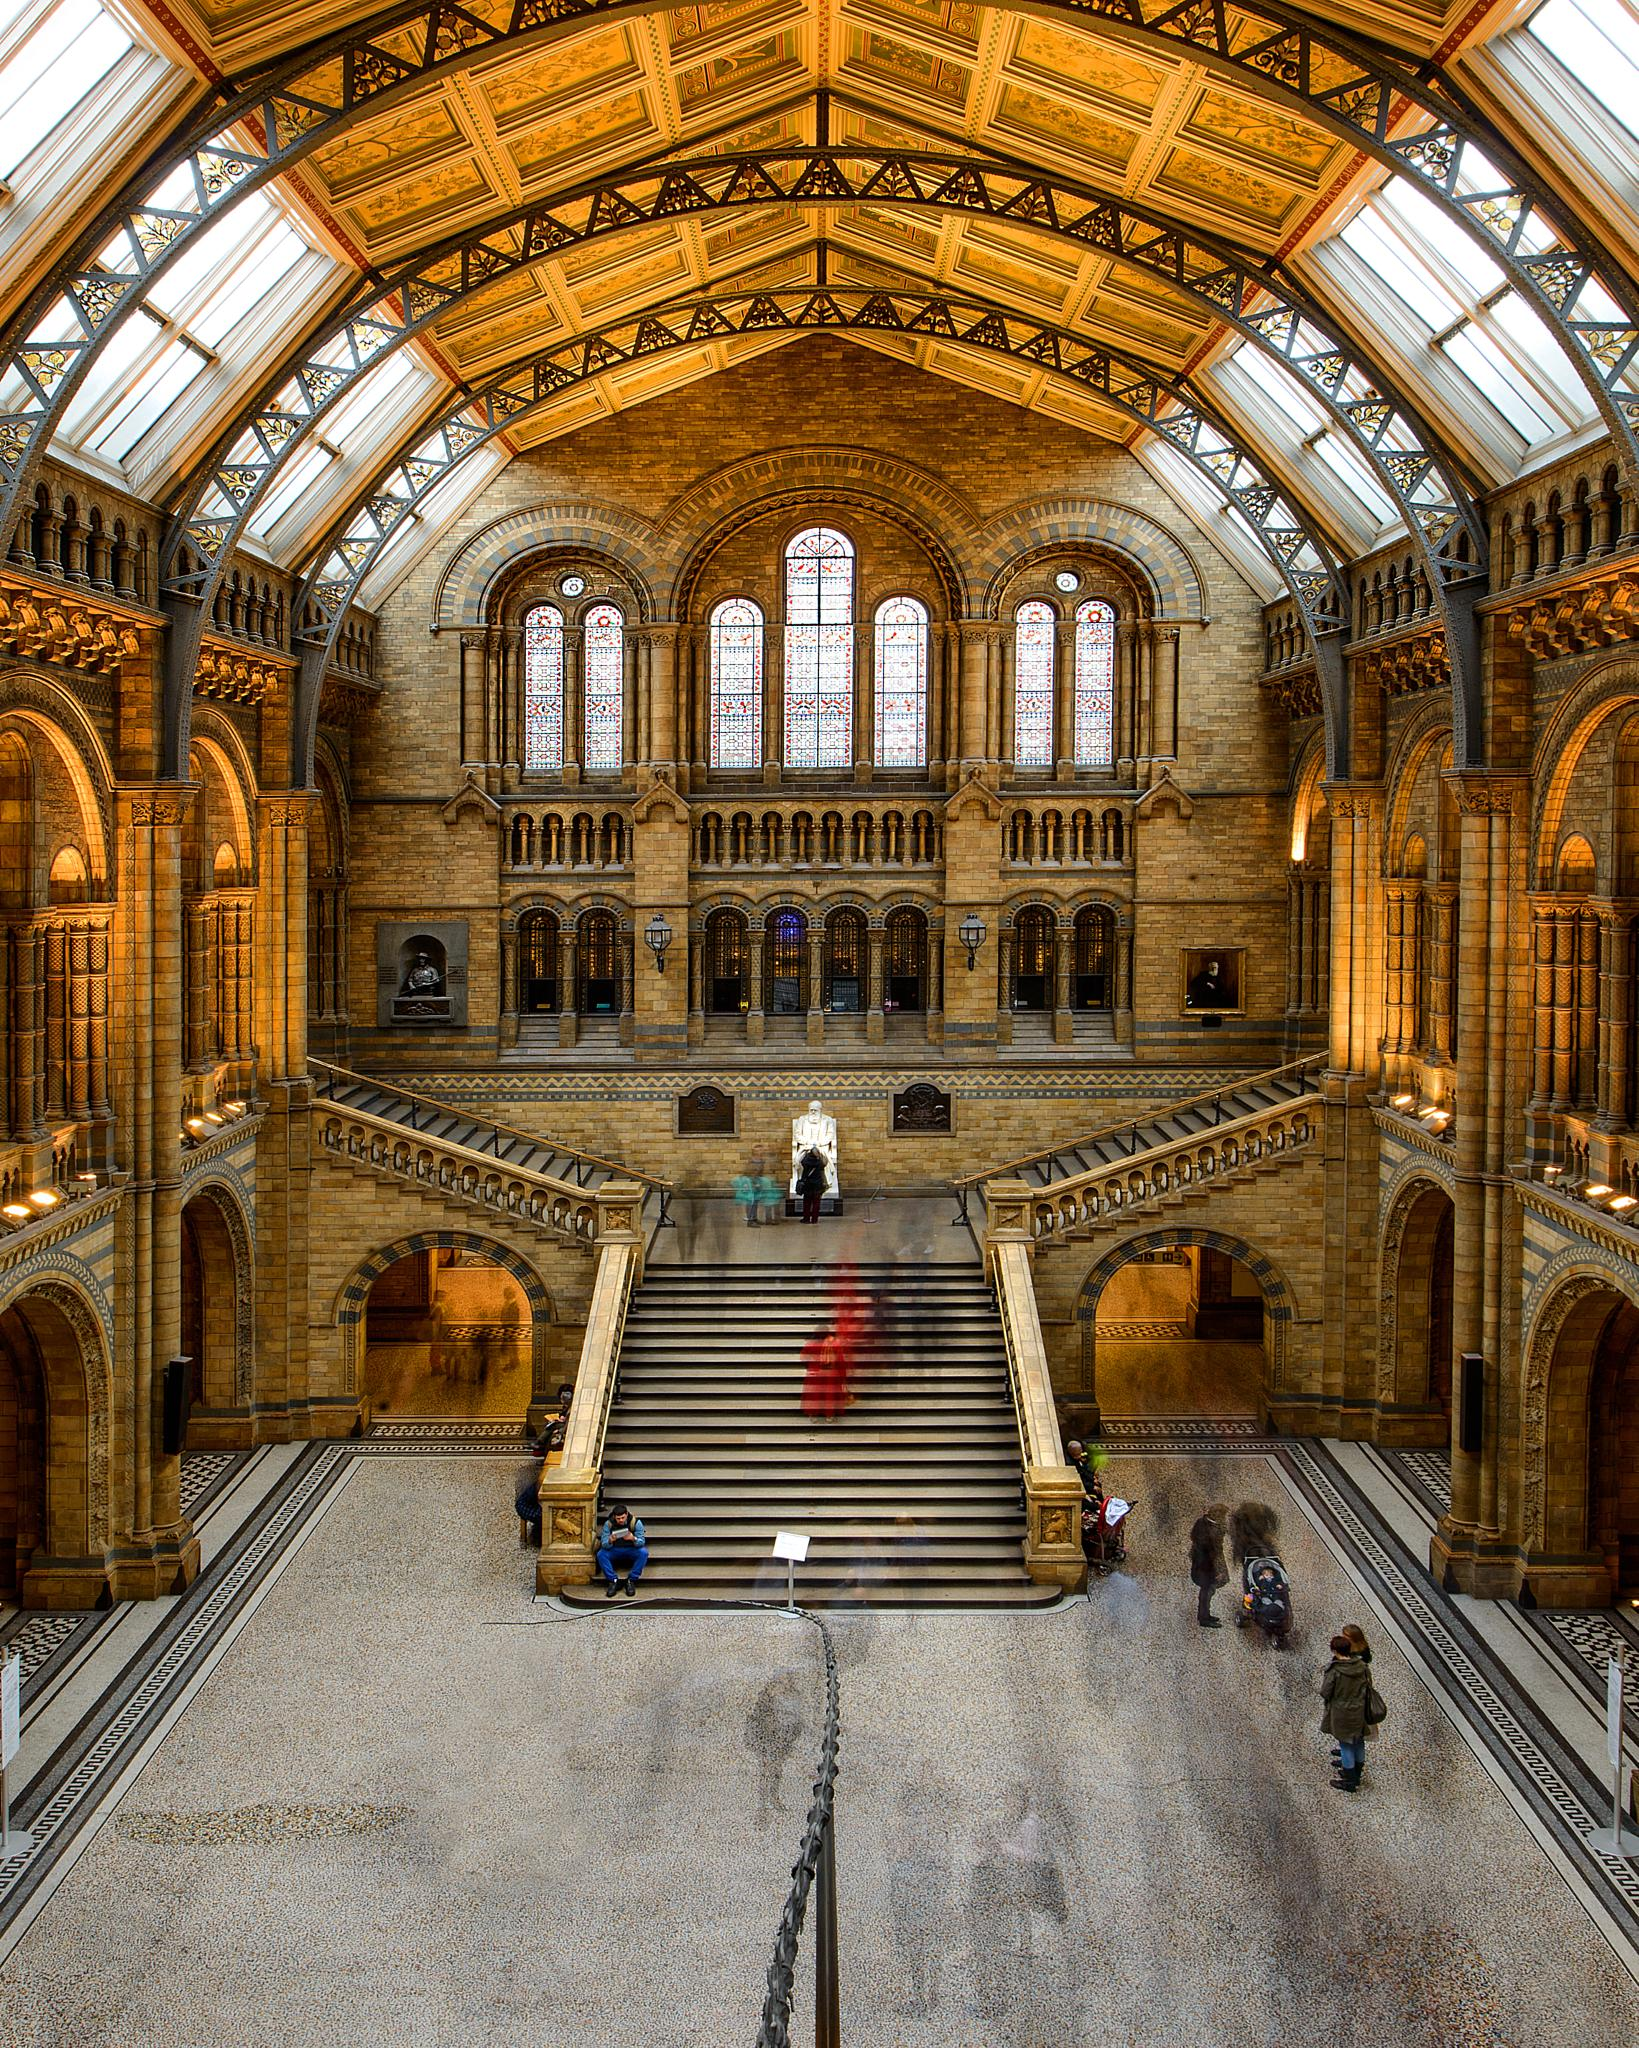 National History Museum by Massimo Crisafi